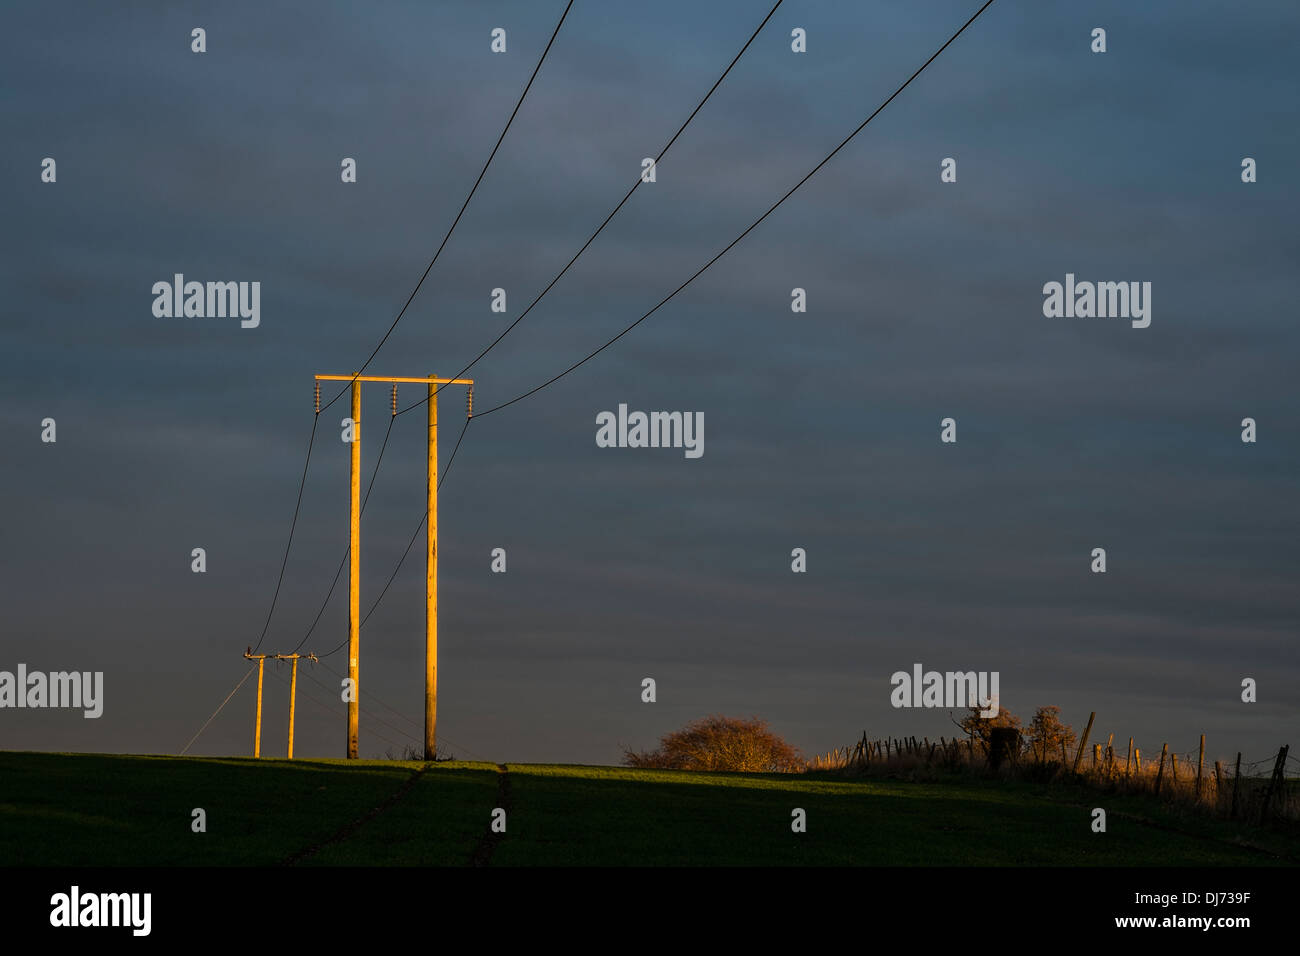 Electricity cables and pylons highlighted in autumn sunlight. - Stock Image